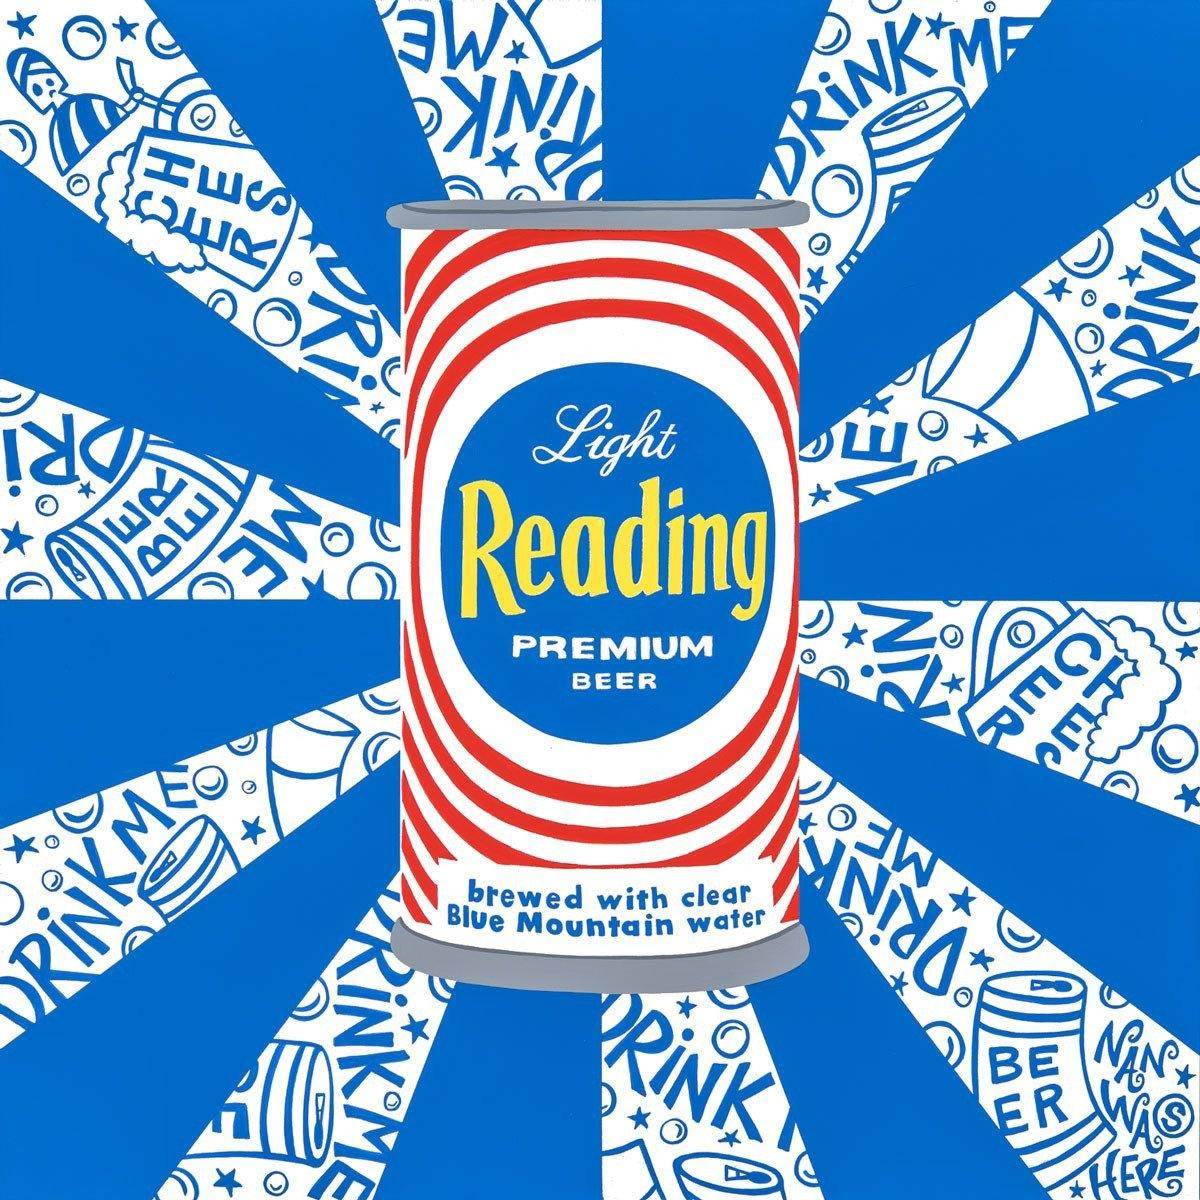 Light Reading Beer Can - Signed Prints | Fine Art and Limited Edition Prints | The Art Of Nan Coffey